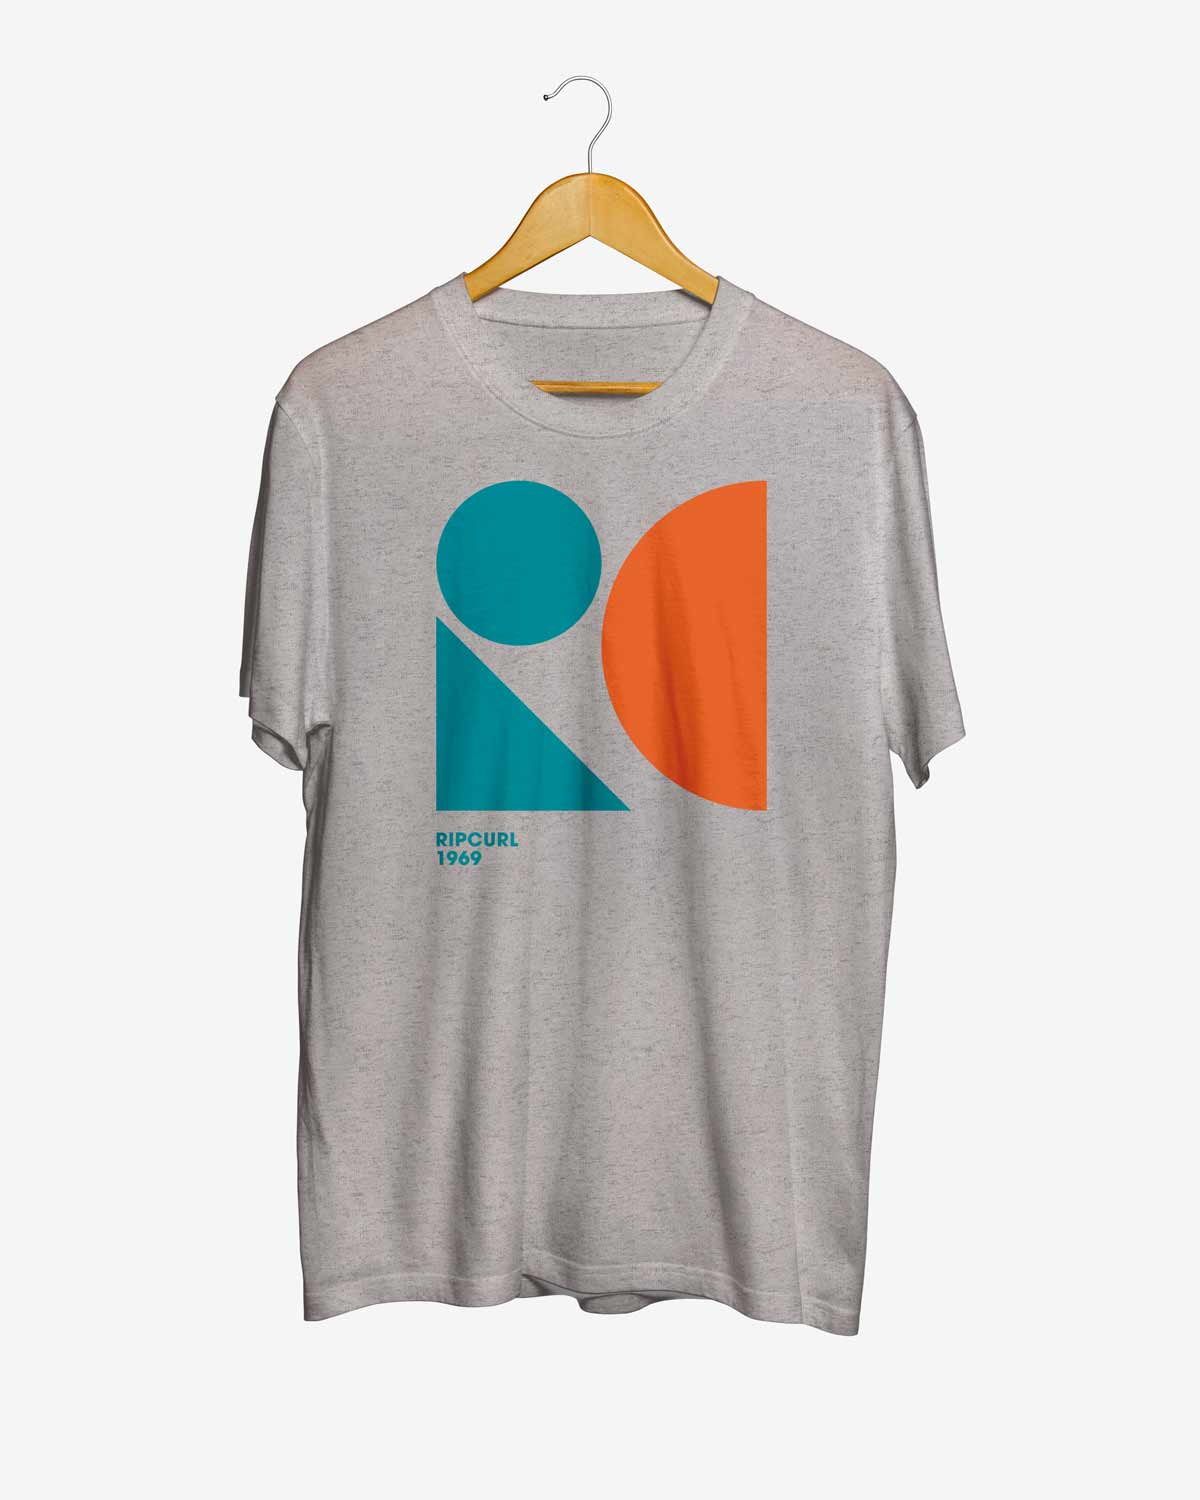 Rip Curl limited edition RC 1969 t-shirt